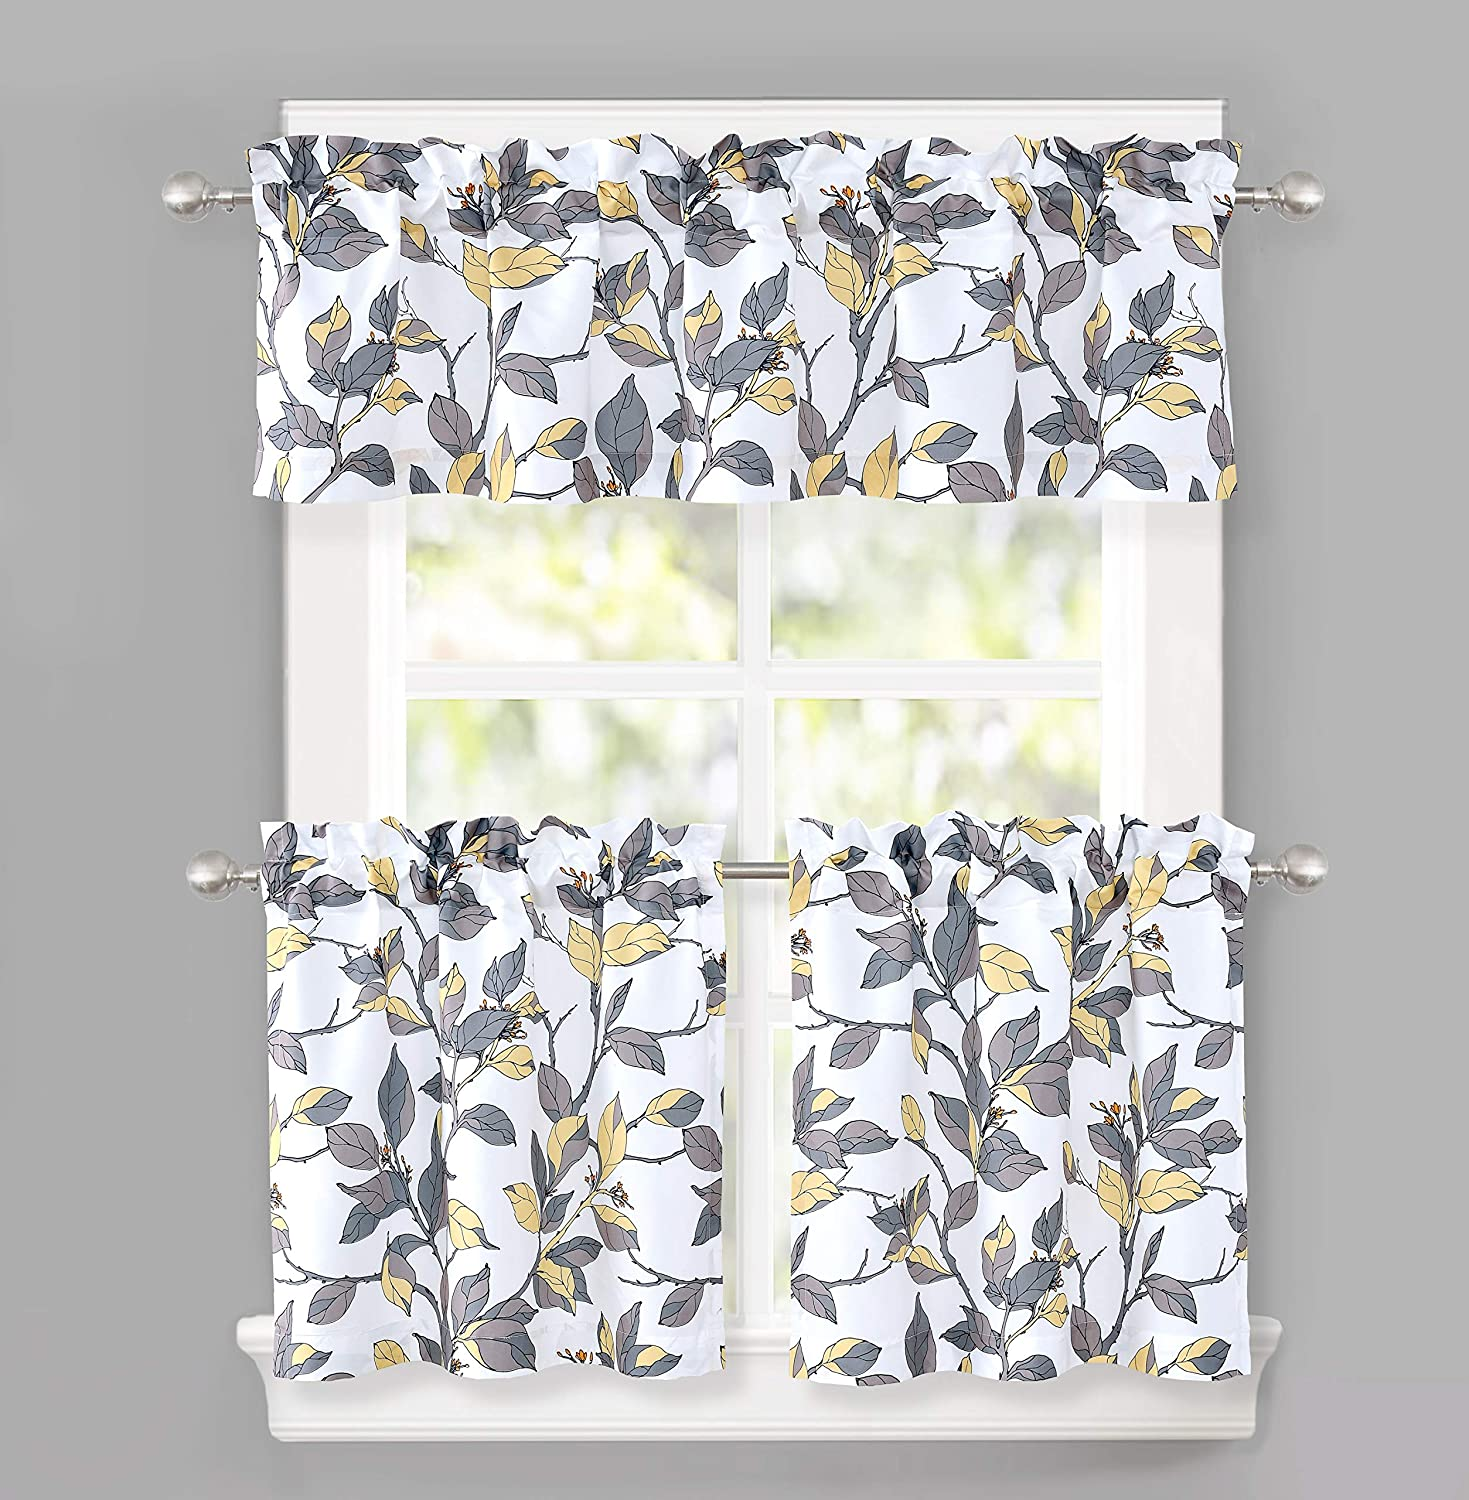 DriftAway Ryan Sketch Floral Branch Pattern Semi Sheer 3 Pieces Rod Pocket Kitchen Window Curtain Set with 2 Tiers 29 Inch by 24 Inch Each and 1 Valance 58 Inch by 14 Inch Yellow Gray